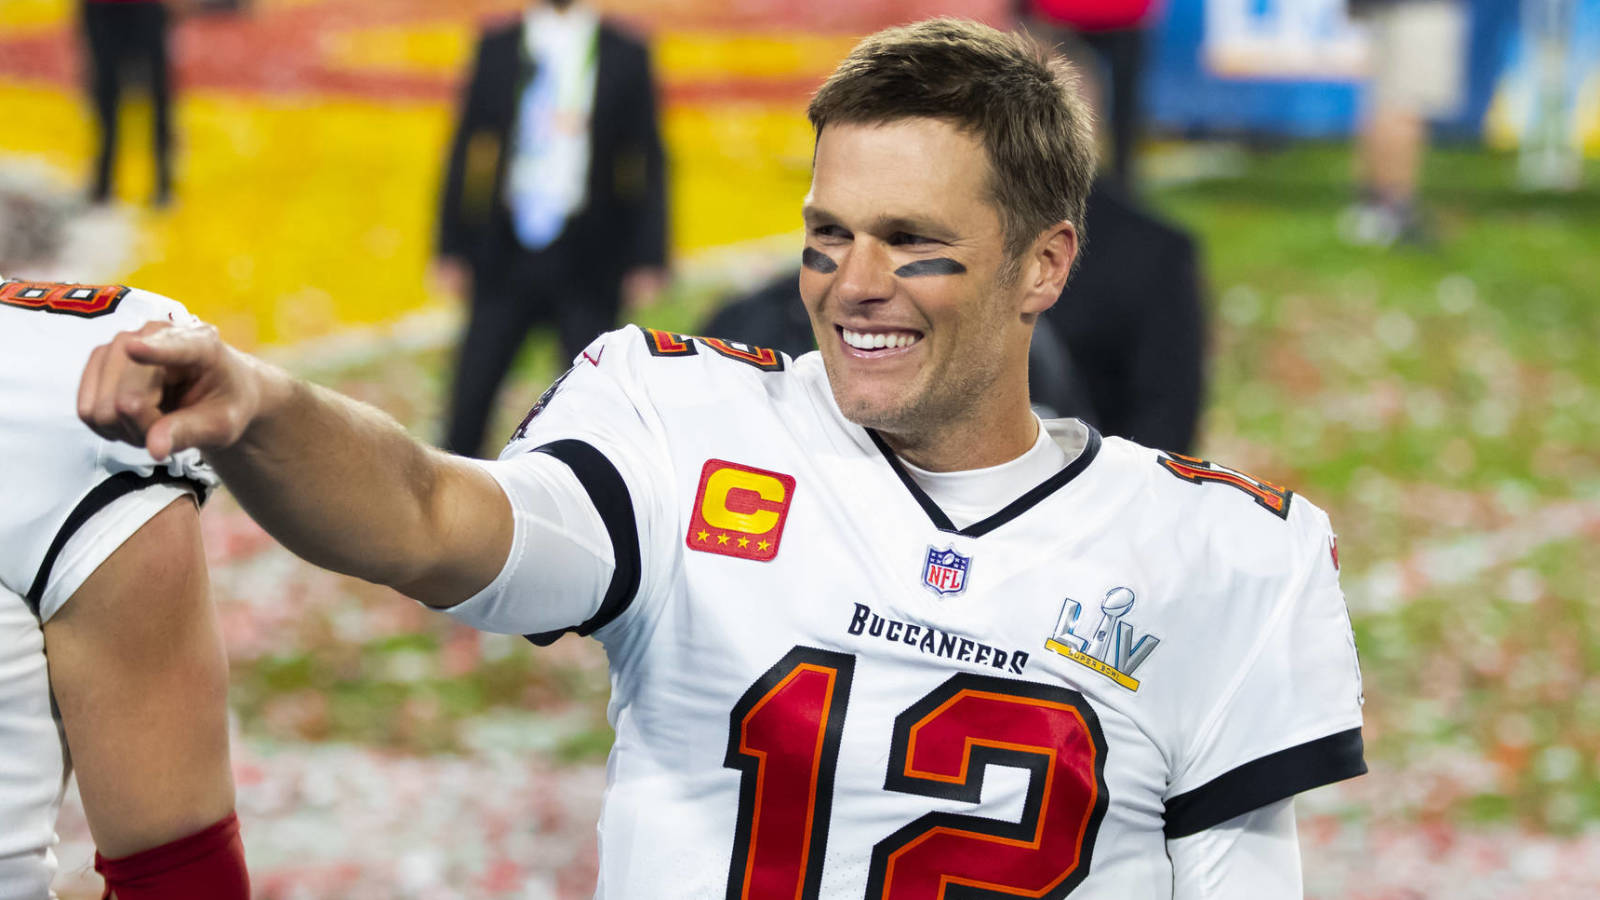 Tom Brady: Going to play for Bucs was culture shock | Yardbarker